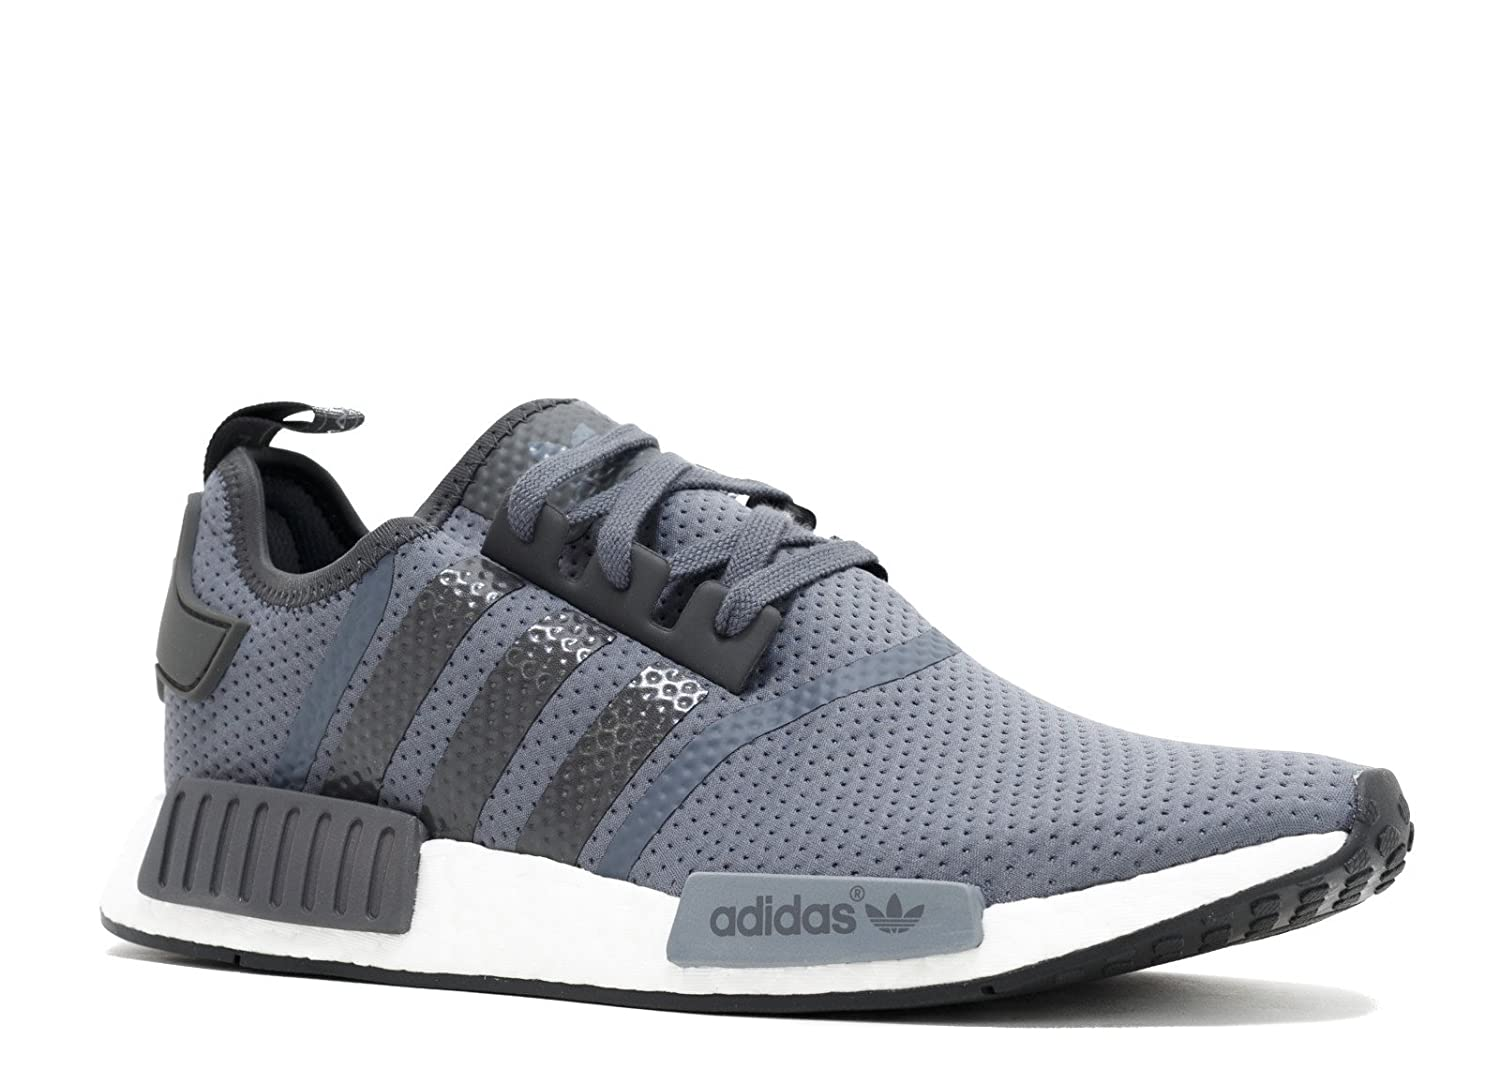 cheap for discount 4213c 9cc33 Amazon.com | adidas NMD R1 - Bb1355 - Size 8 Grey, Dark Grey ...